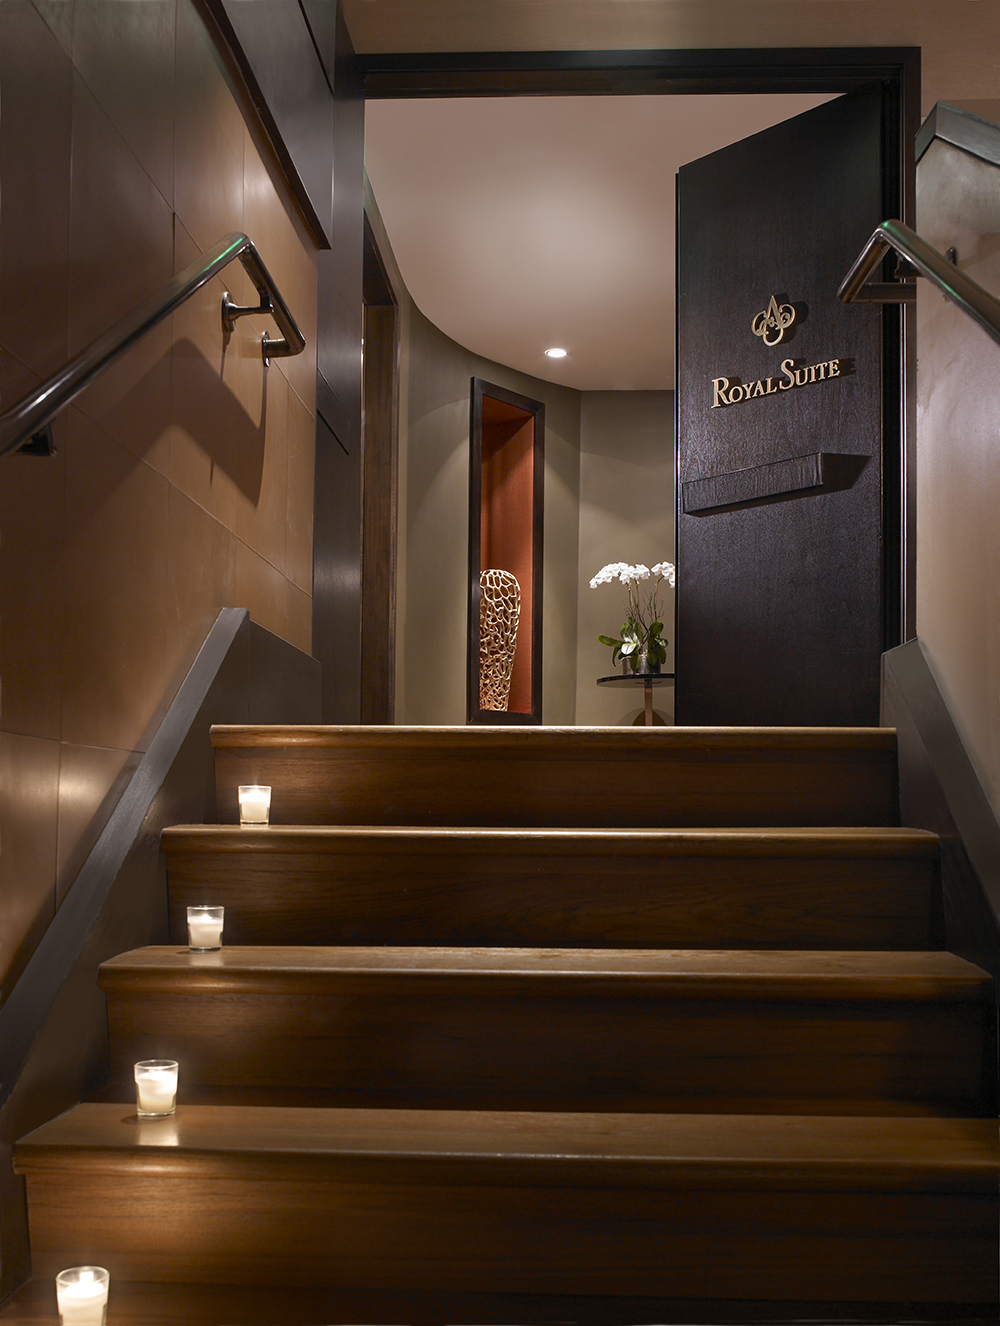 entry royal spa treatment suite.jpg